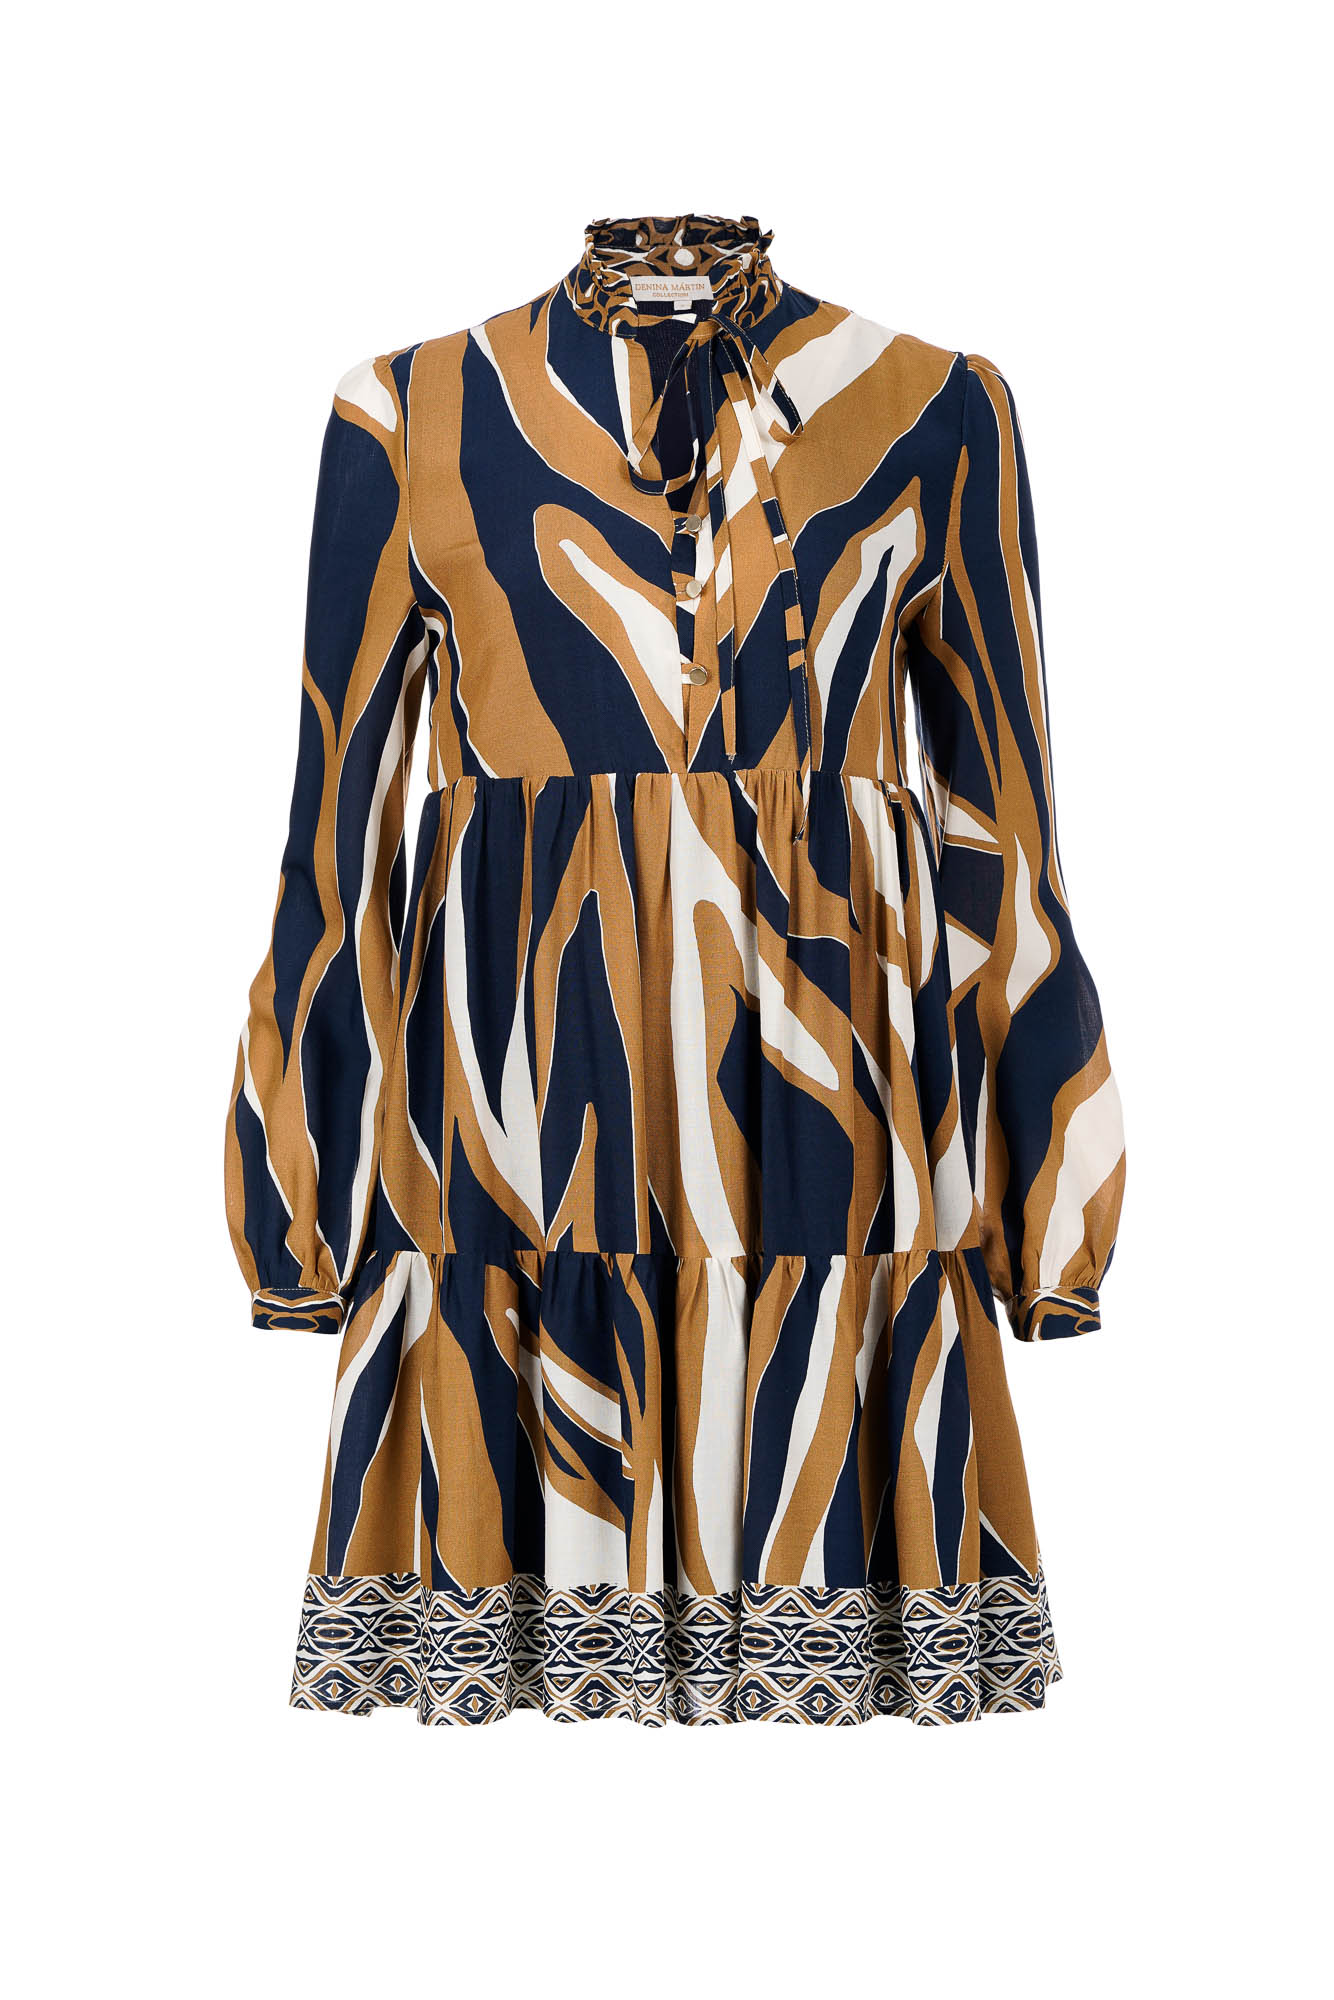 Mike printed dress by Denina Martin Collection